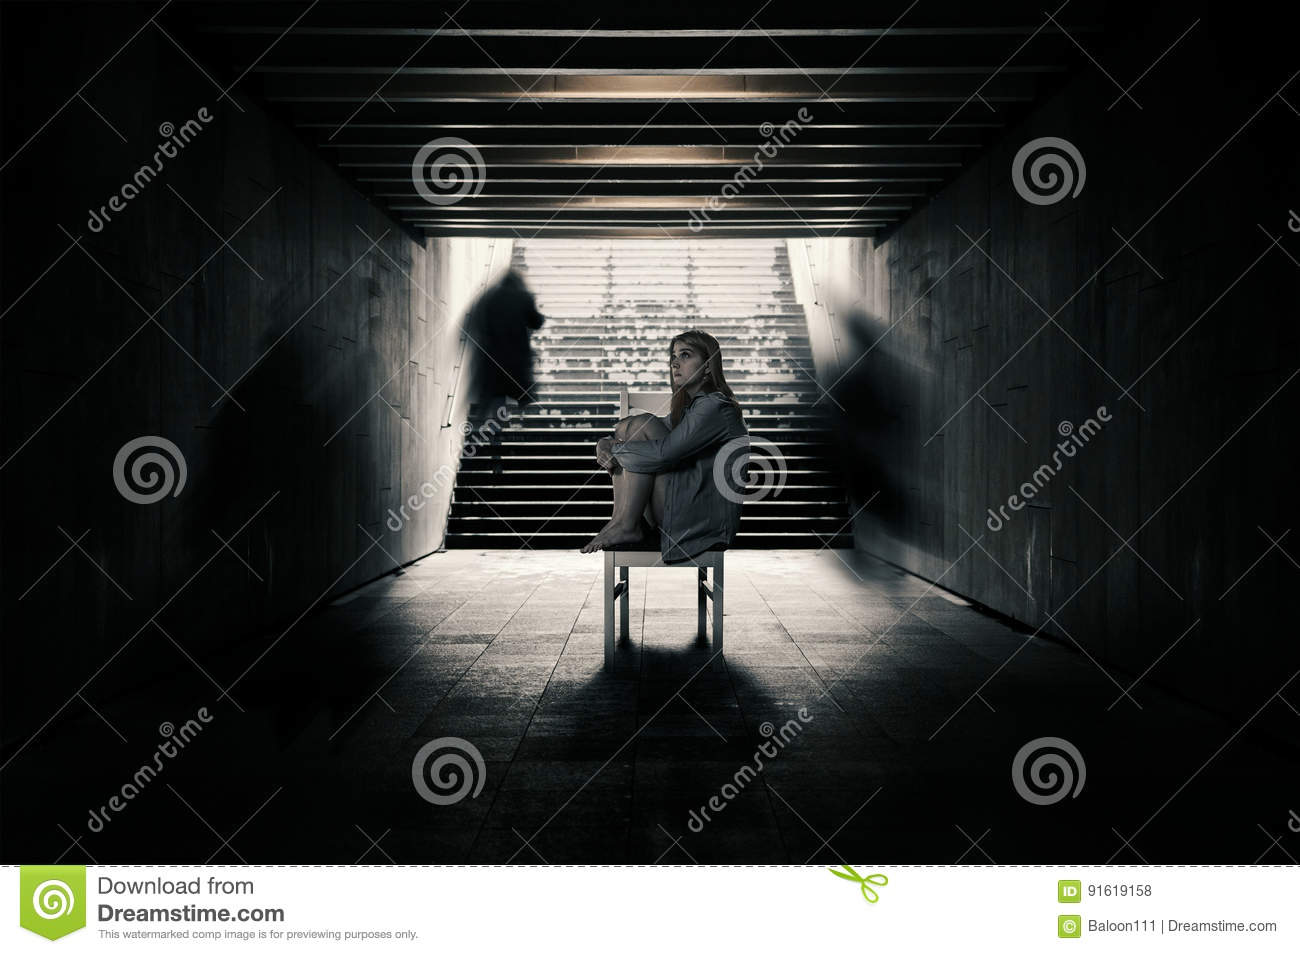 Young woman alone in a tunnel and strangers pass beyond.